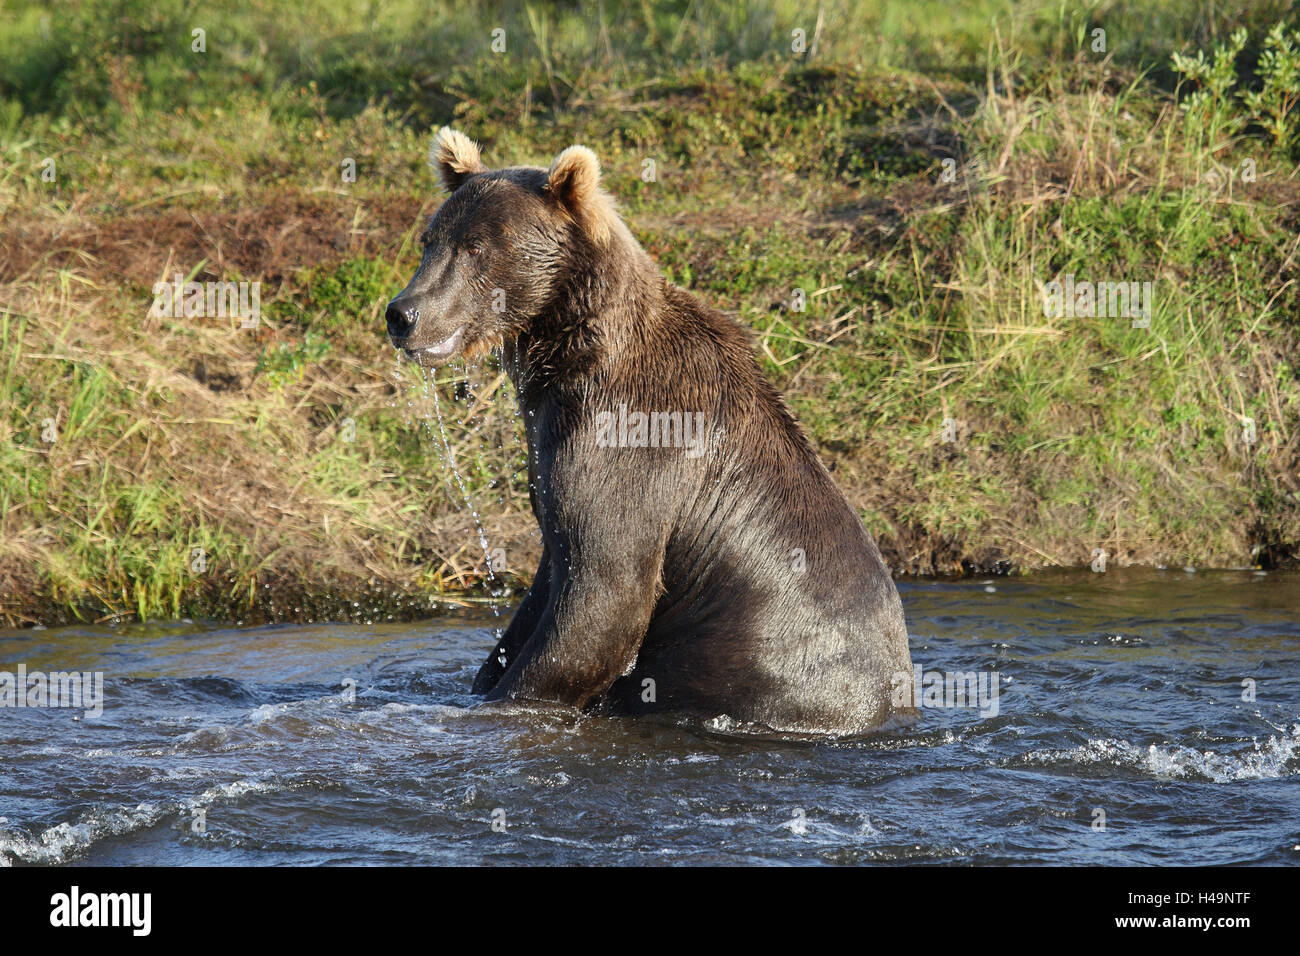 Grizzly, water, - Stock Image